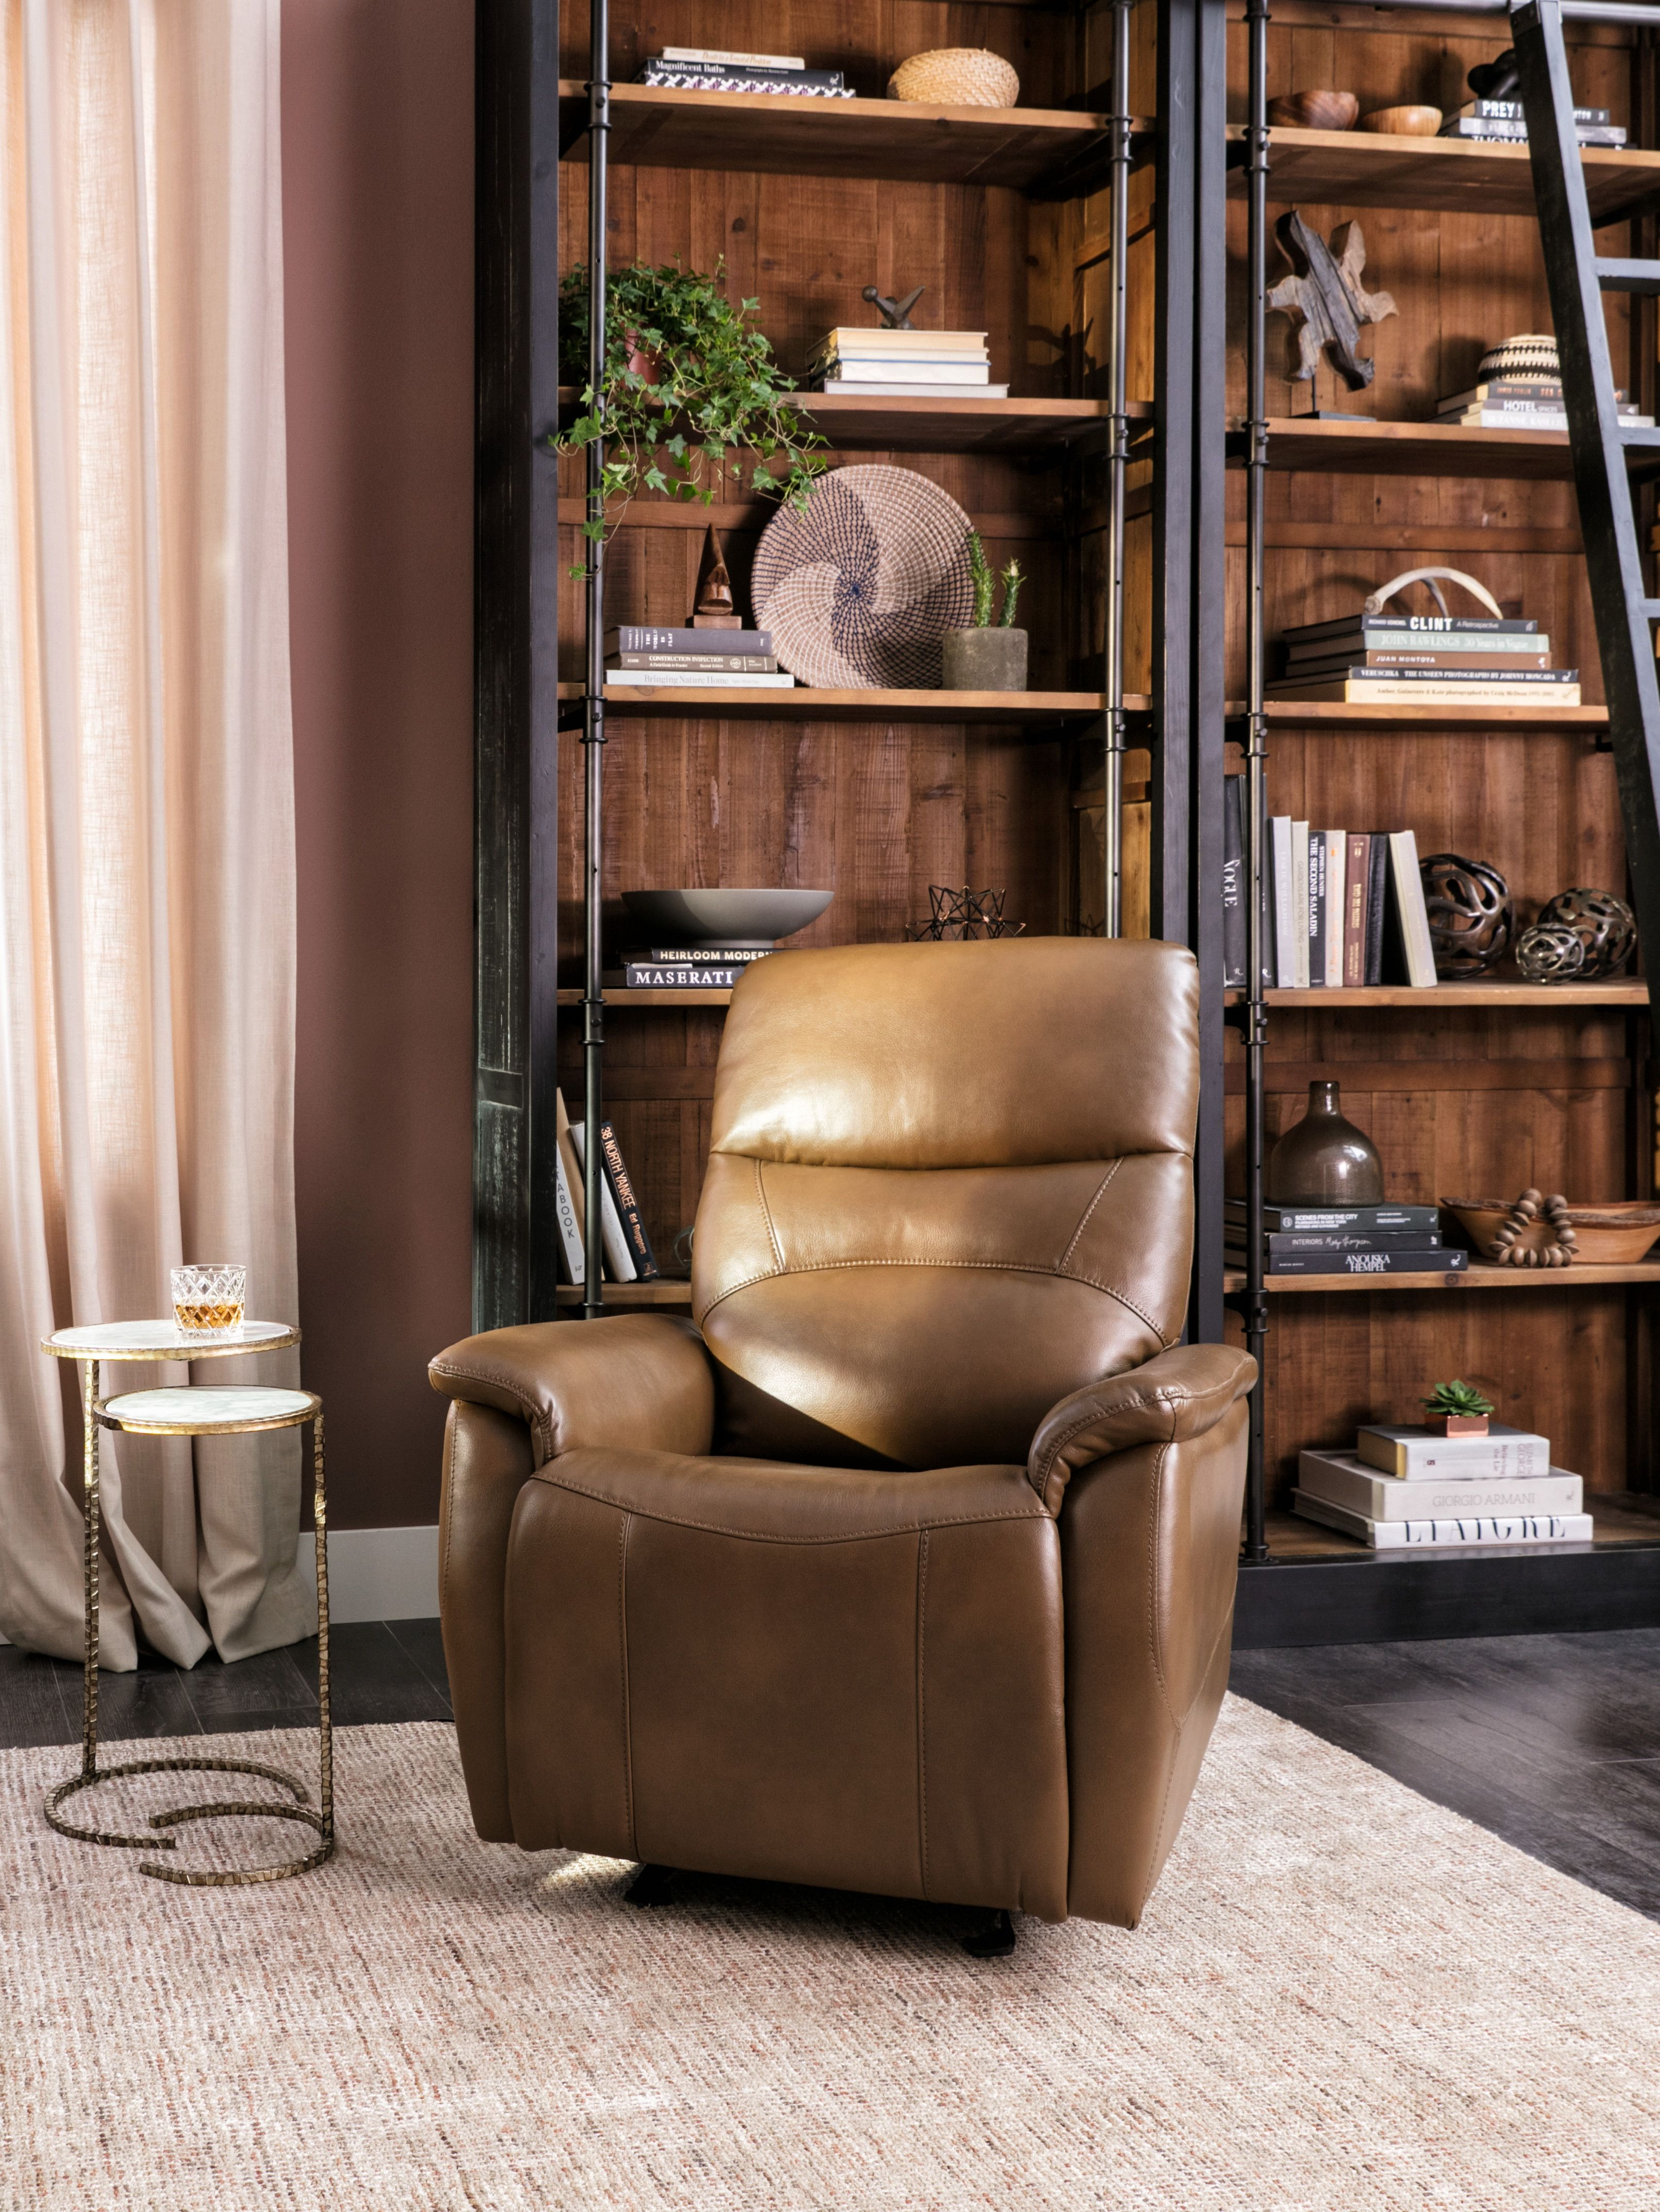 Genuine Leather Recliner Chairs Relax In Comfortable And Durable Recliners In Styles To Fit Traditional Romantic Home Decor Master Bedroom Design Home Decor